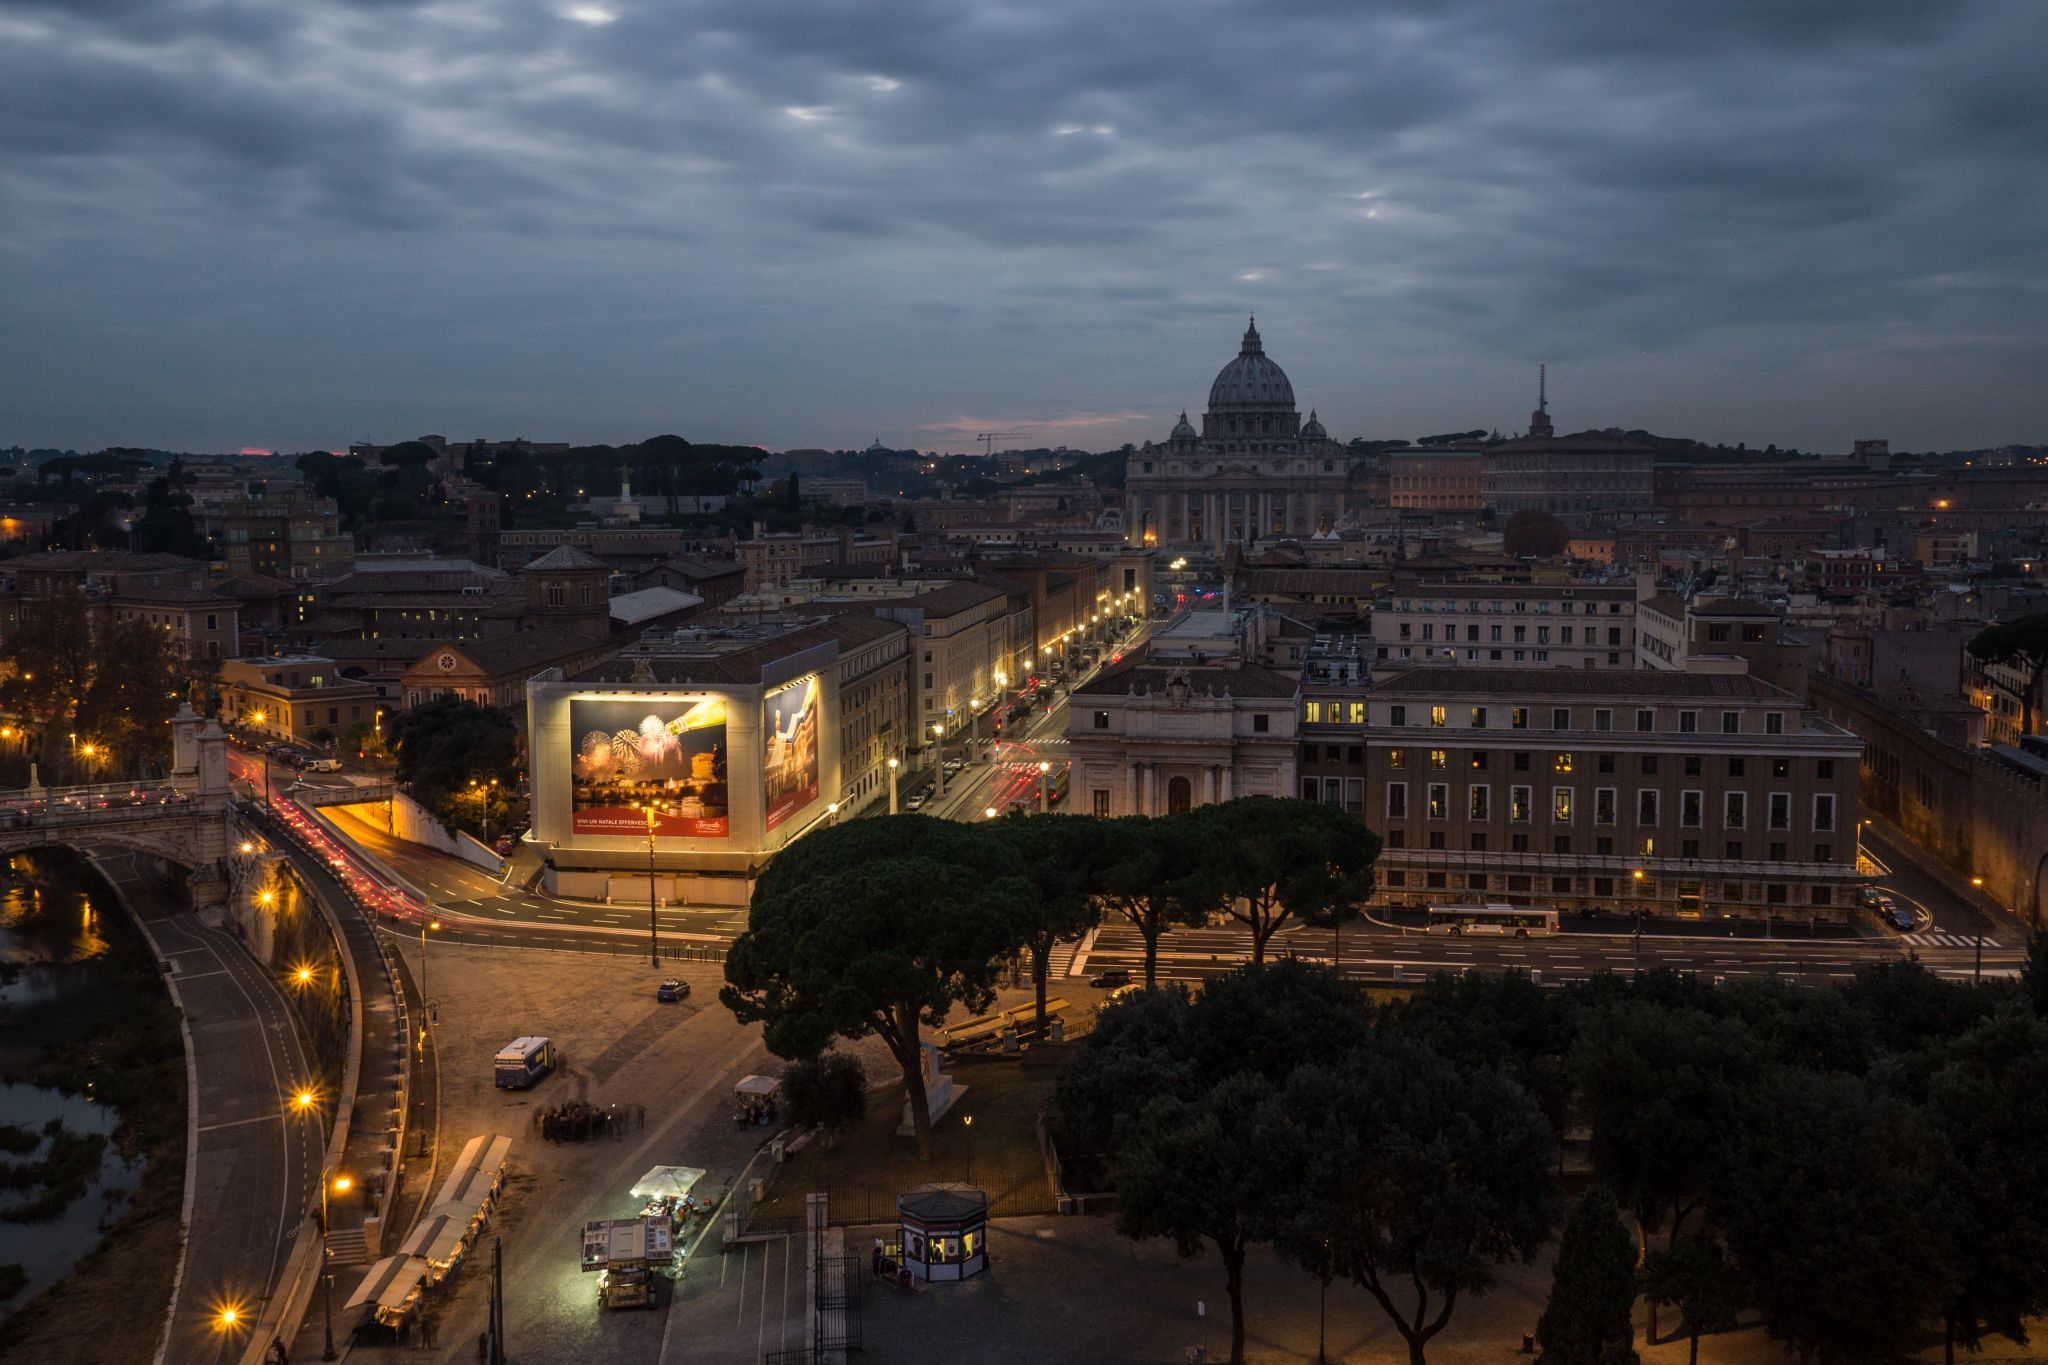 View from Castel Sant-Angelo to Basilica di San Pietro, Italy